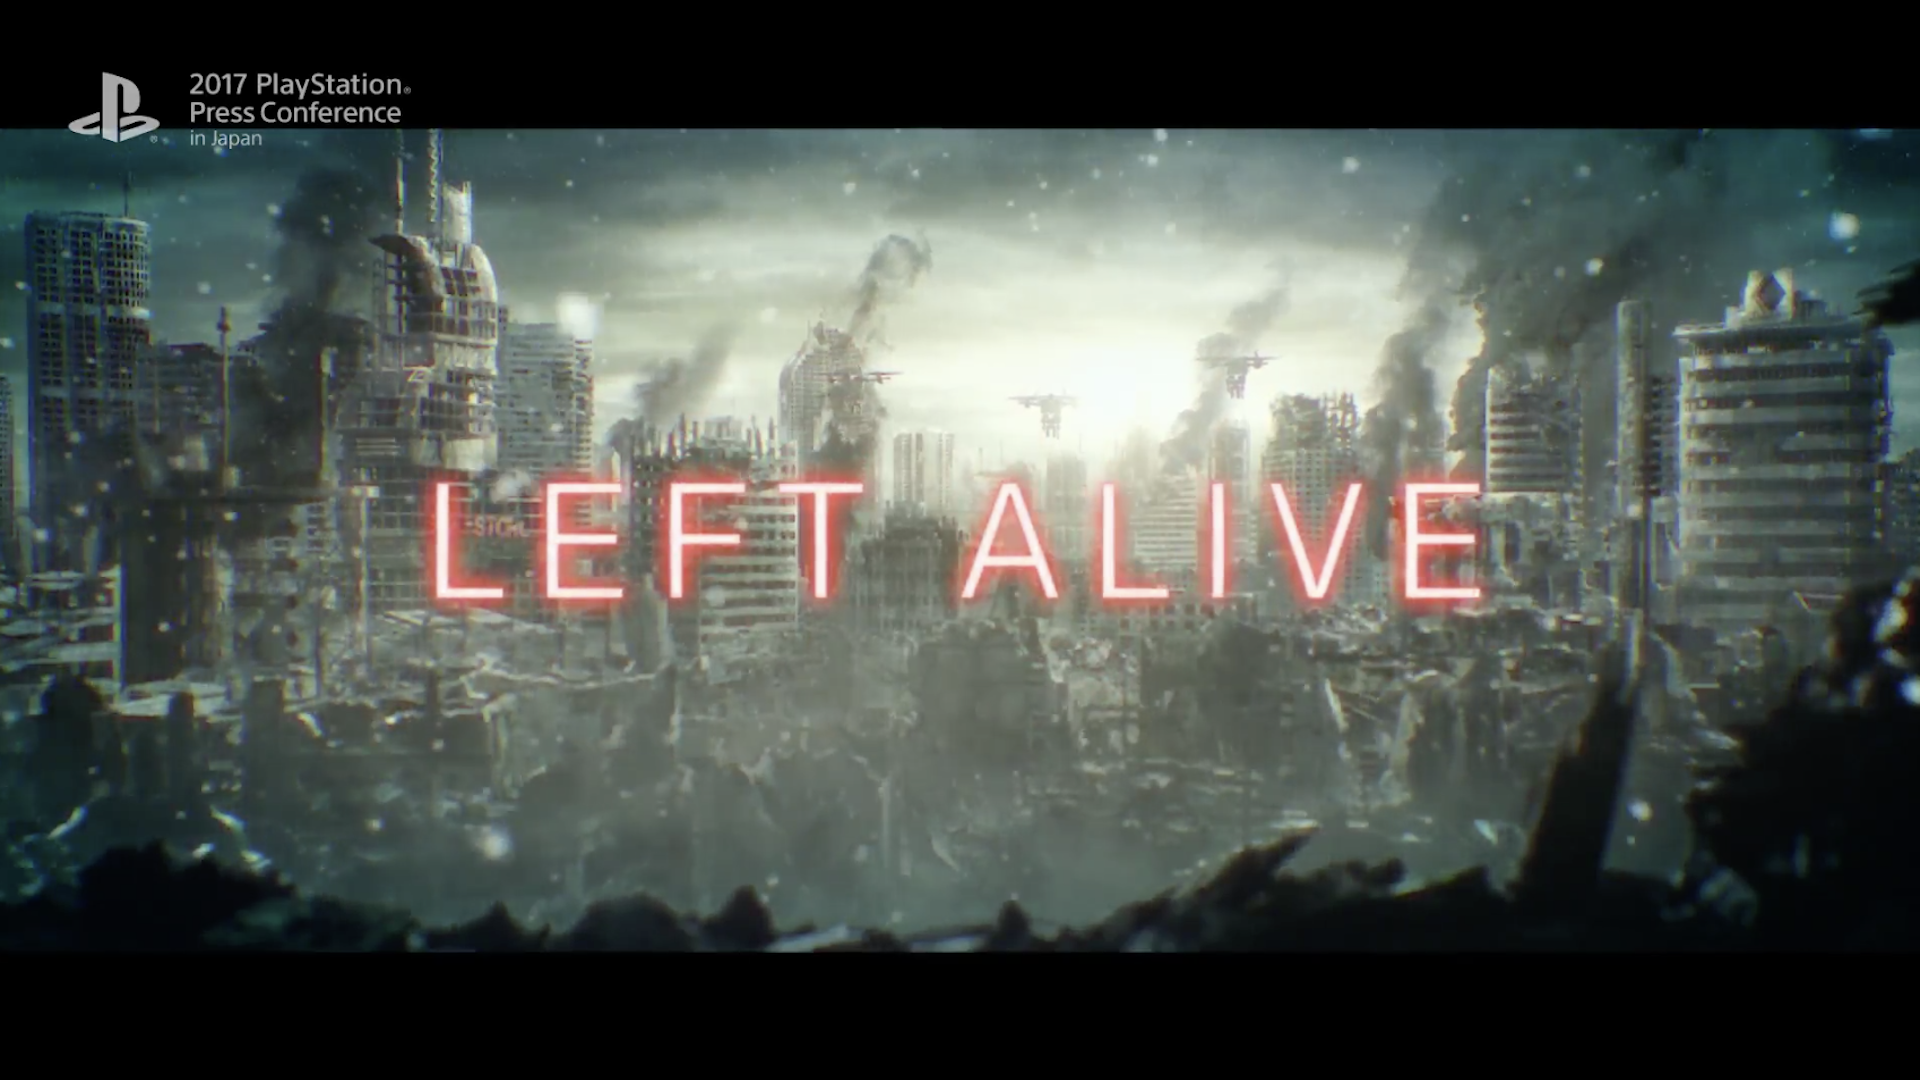 TGS 2017 Square Enix Reveals Left Alive from Former Metal